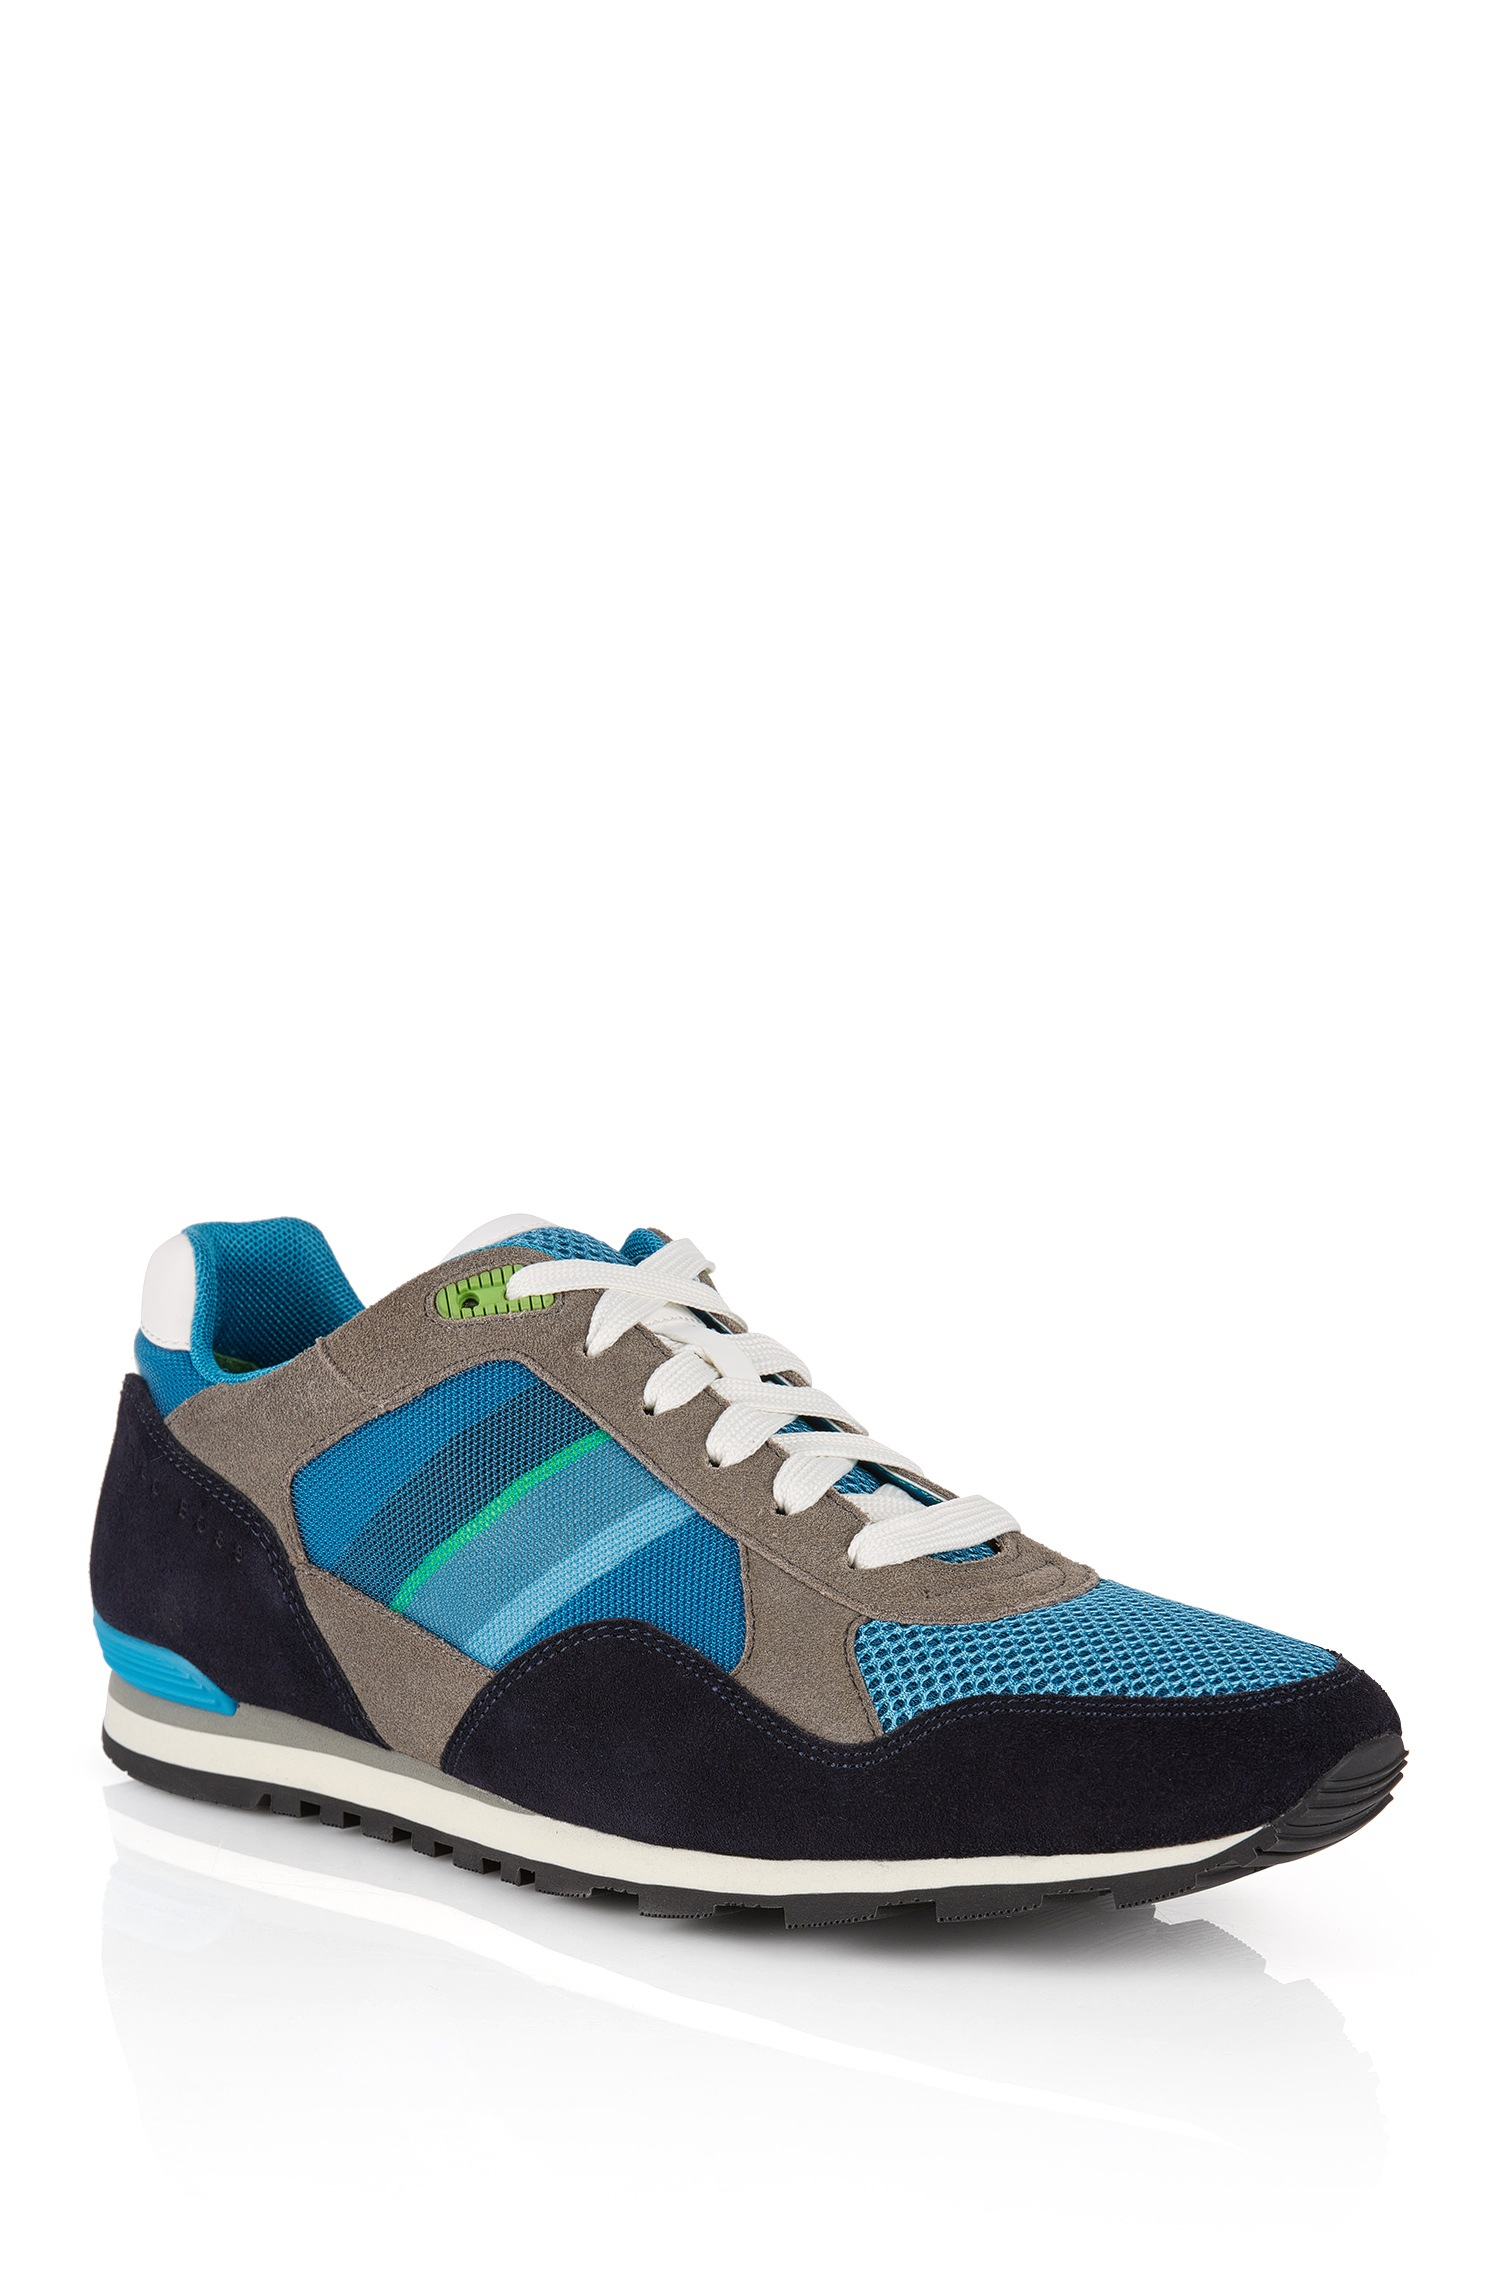 boss green suede sneakers 39 runcool 39 in blue for men lyst. Black Bedroom Furniture Sets. Home Design Ideas